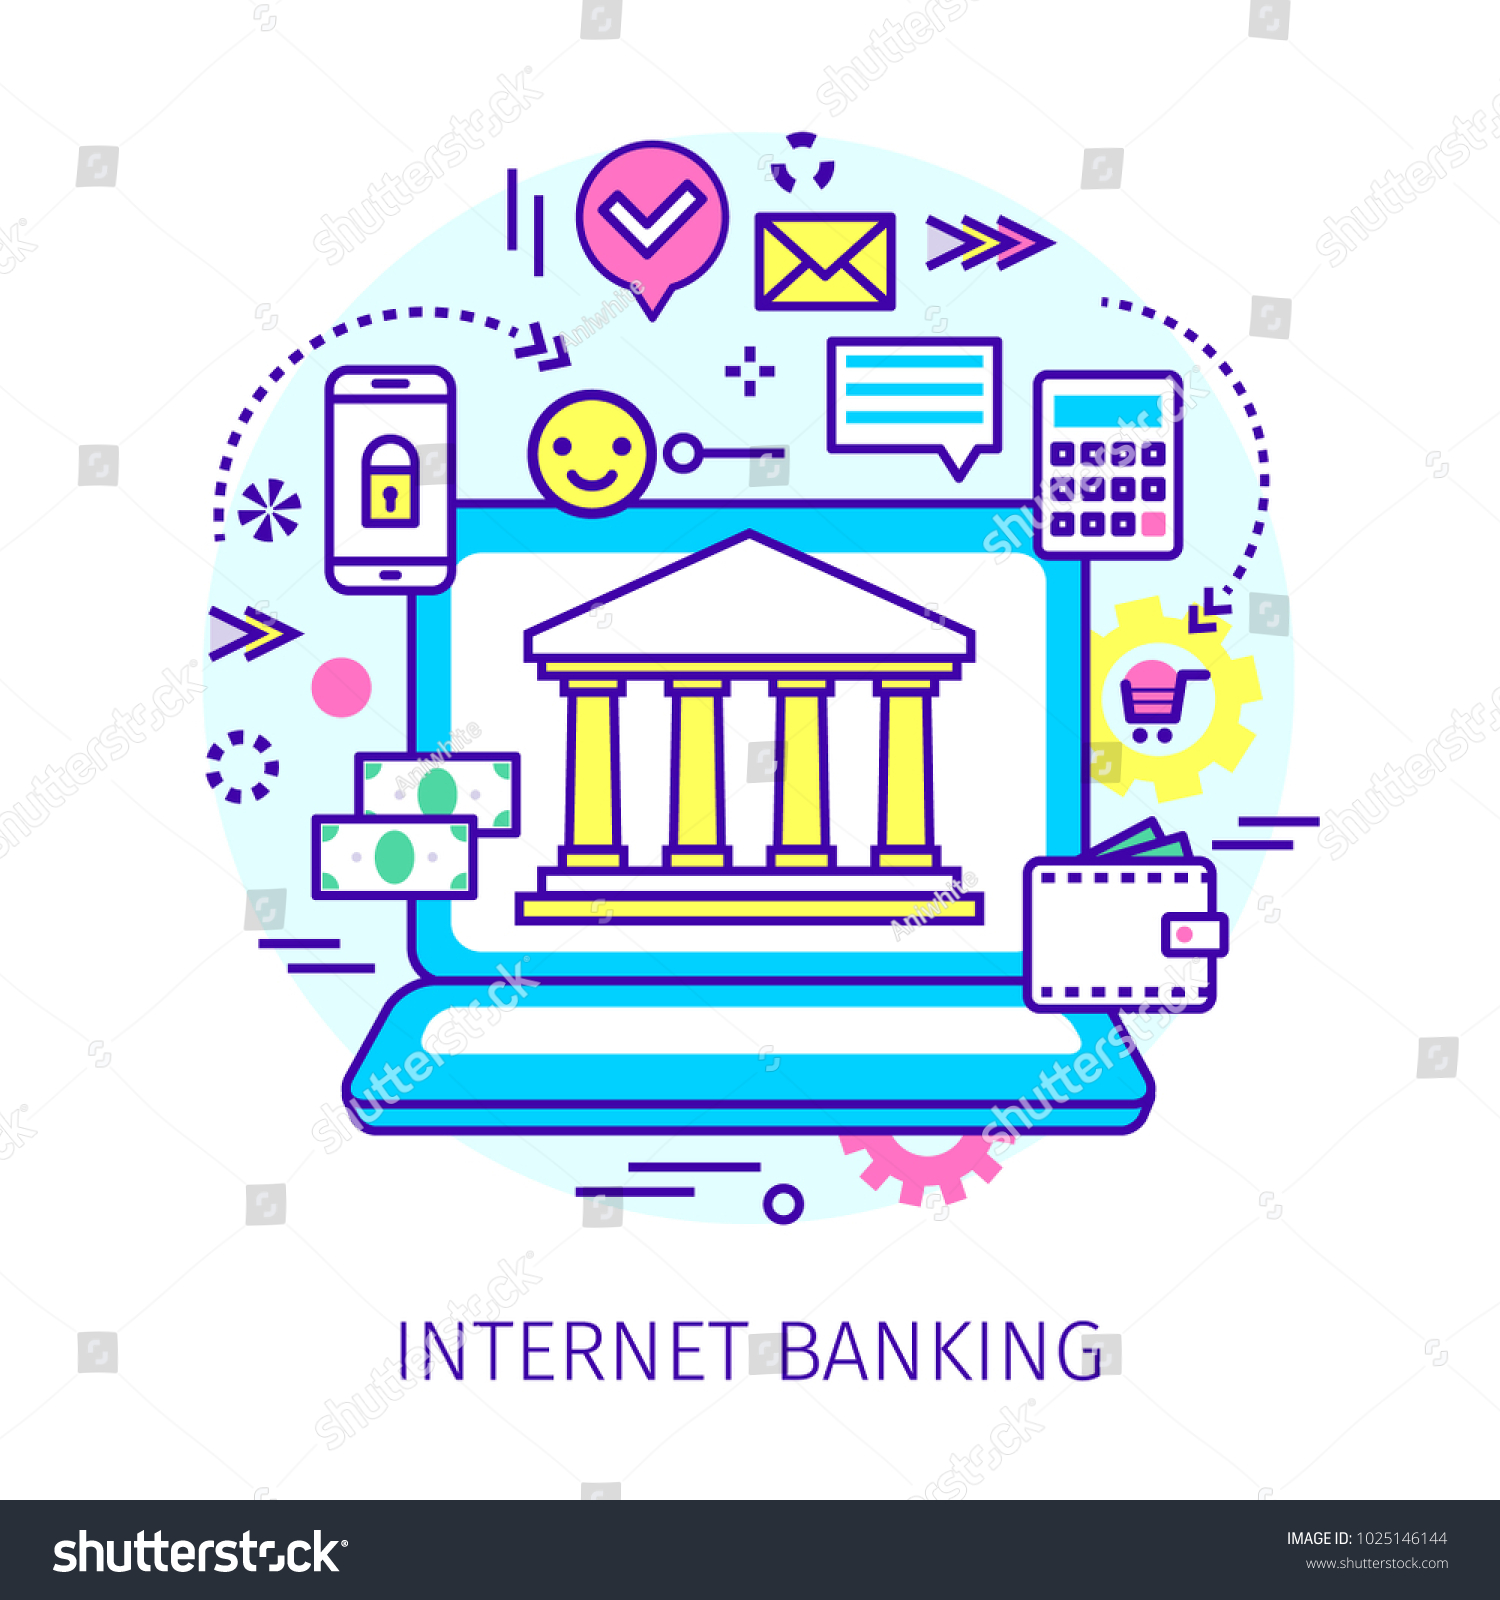 Concept internet banking open notebook symbol stock vector concept of internet banking open notebook with symbol of bank on the screen and icons biocorpaavc Gallery